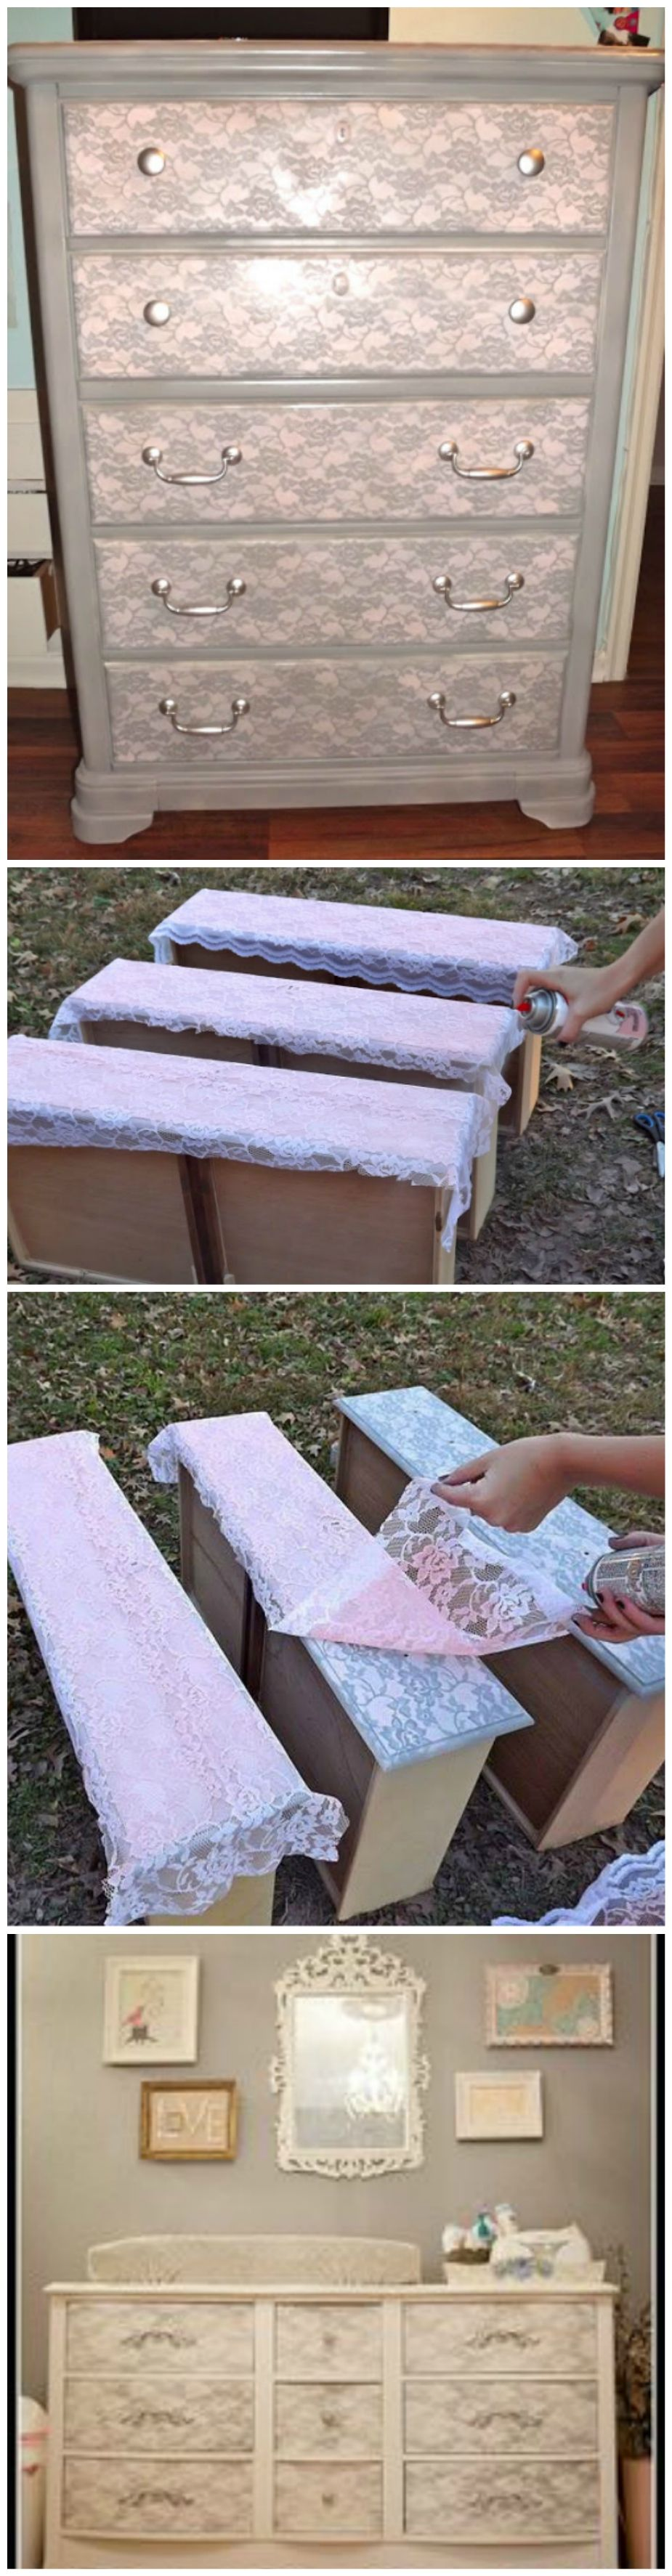 diy furniture refinishing projects. DIY Project: Refinished Dresser Using Lace Diy Furniture Refinishing Projects